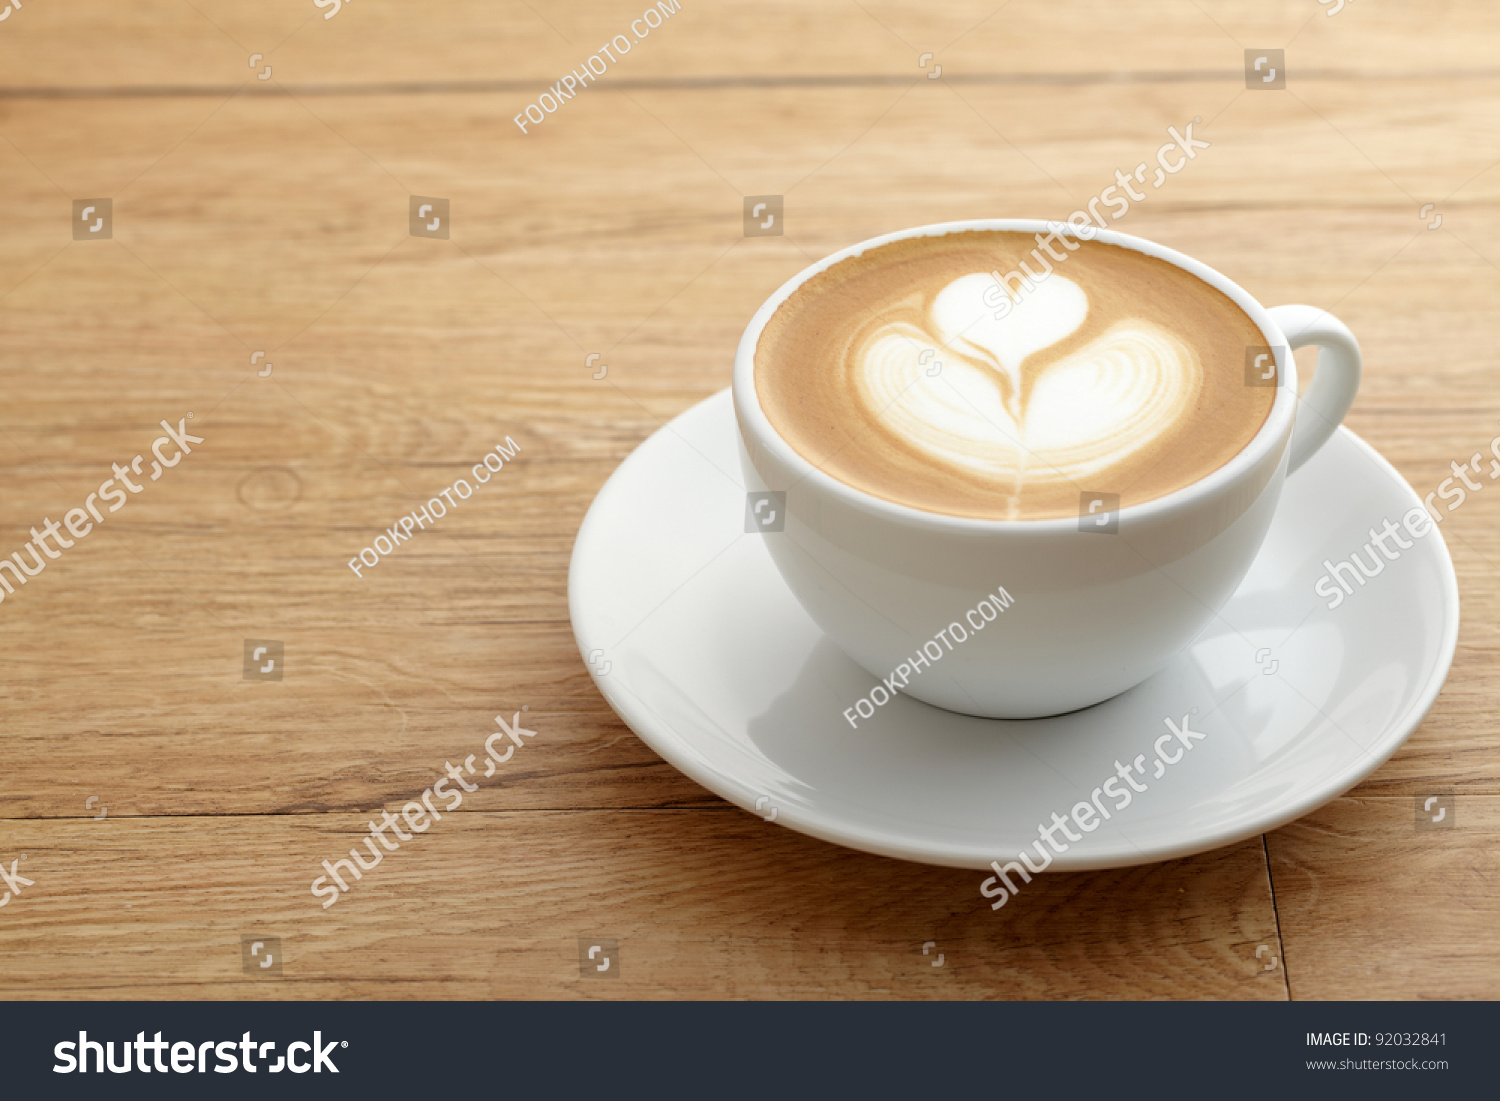 Cup Coffee Heart Pattern White Cup Stock Photo 92032841